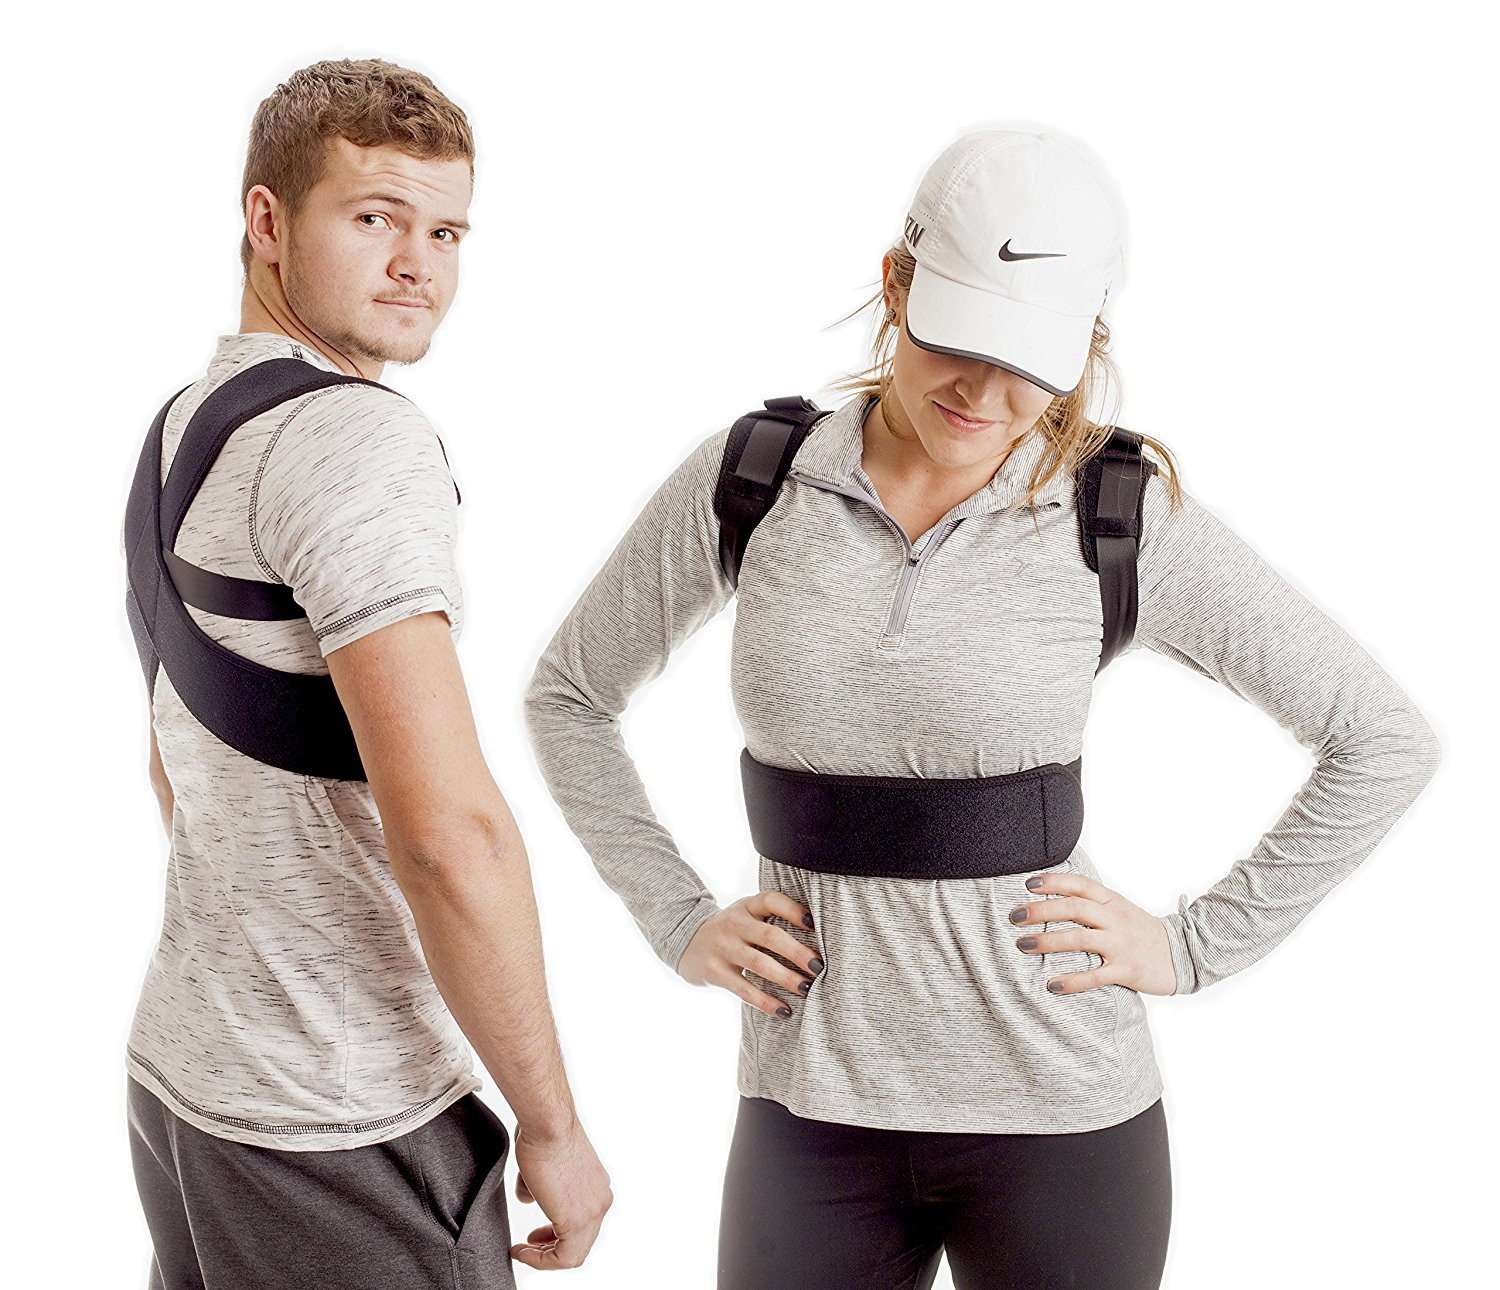 Back Posture Corrector for Men & Women -Kyphosis Brace to Improve Shoulder Alignment & Relieve Upper Back Pain -Posture Brace thats Effective & Comfortable - Clavicle Support for Improve Posture